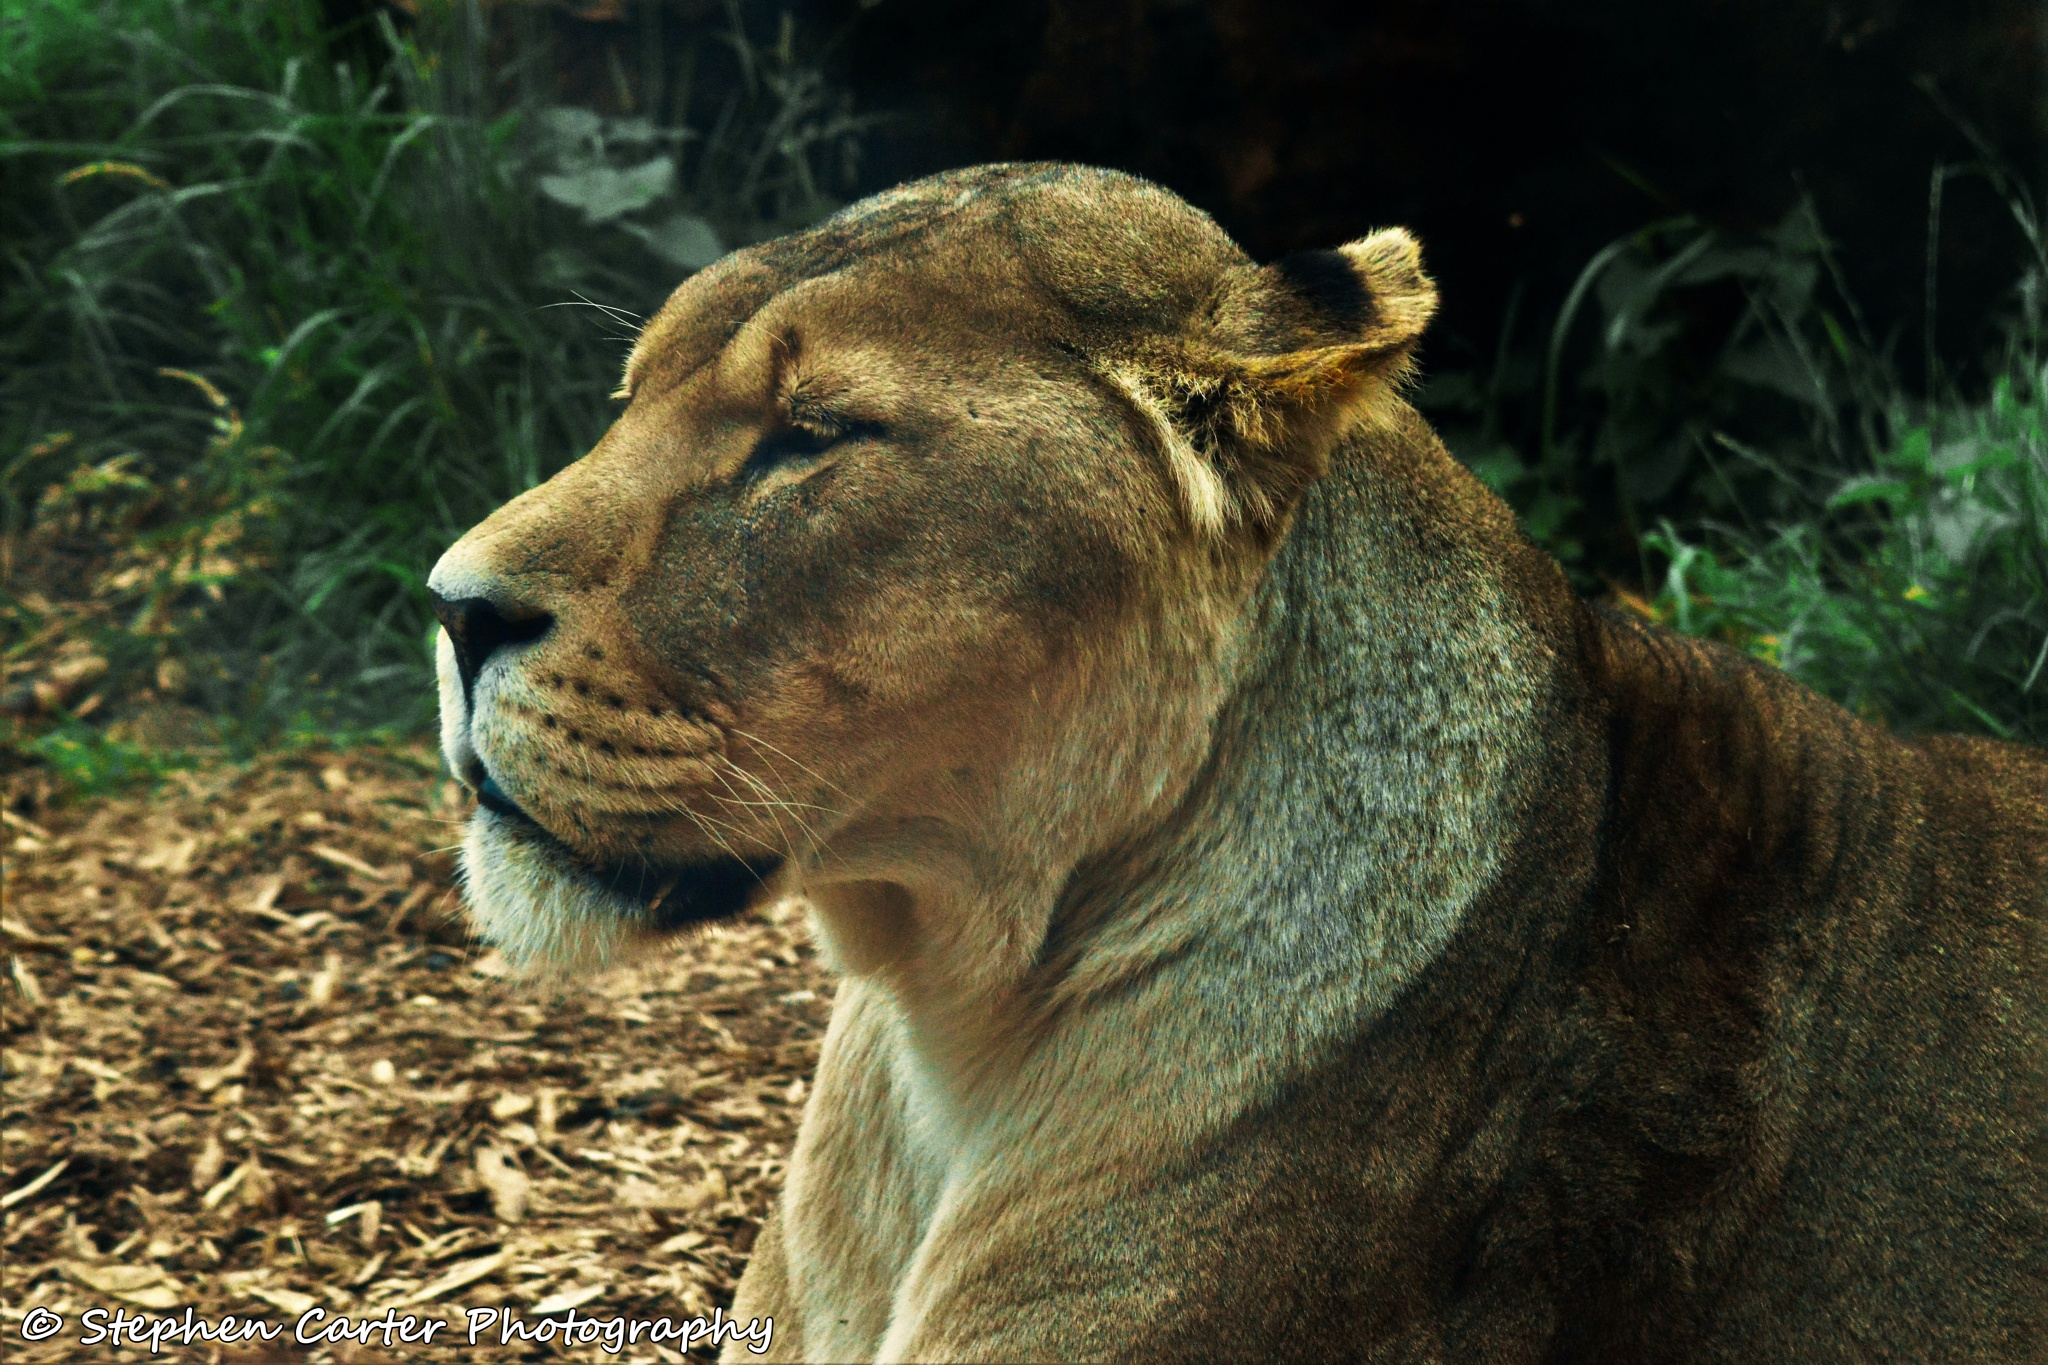 Lioness by Stephen Carter Photography